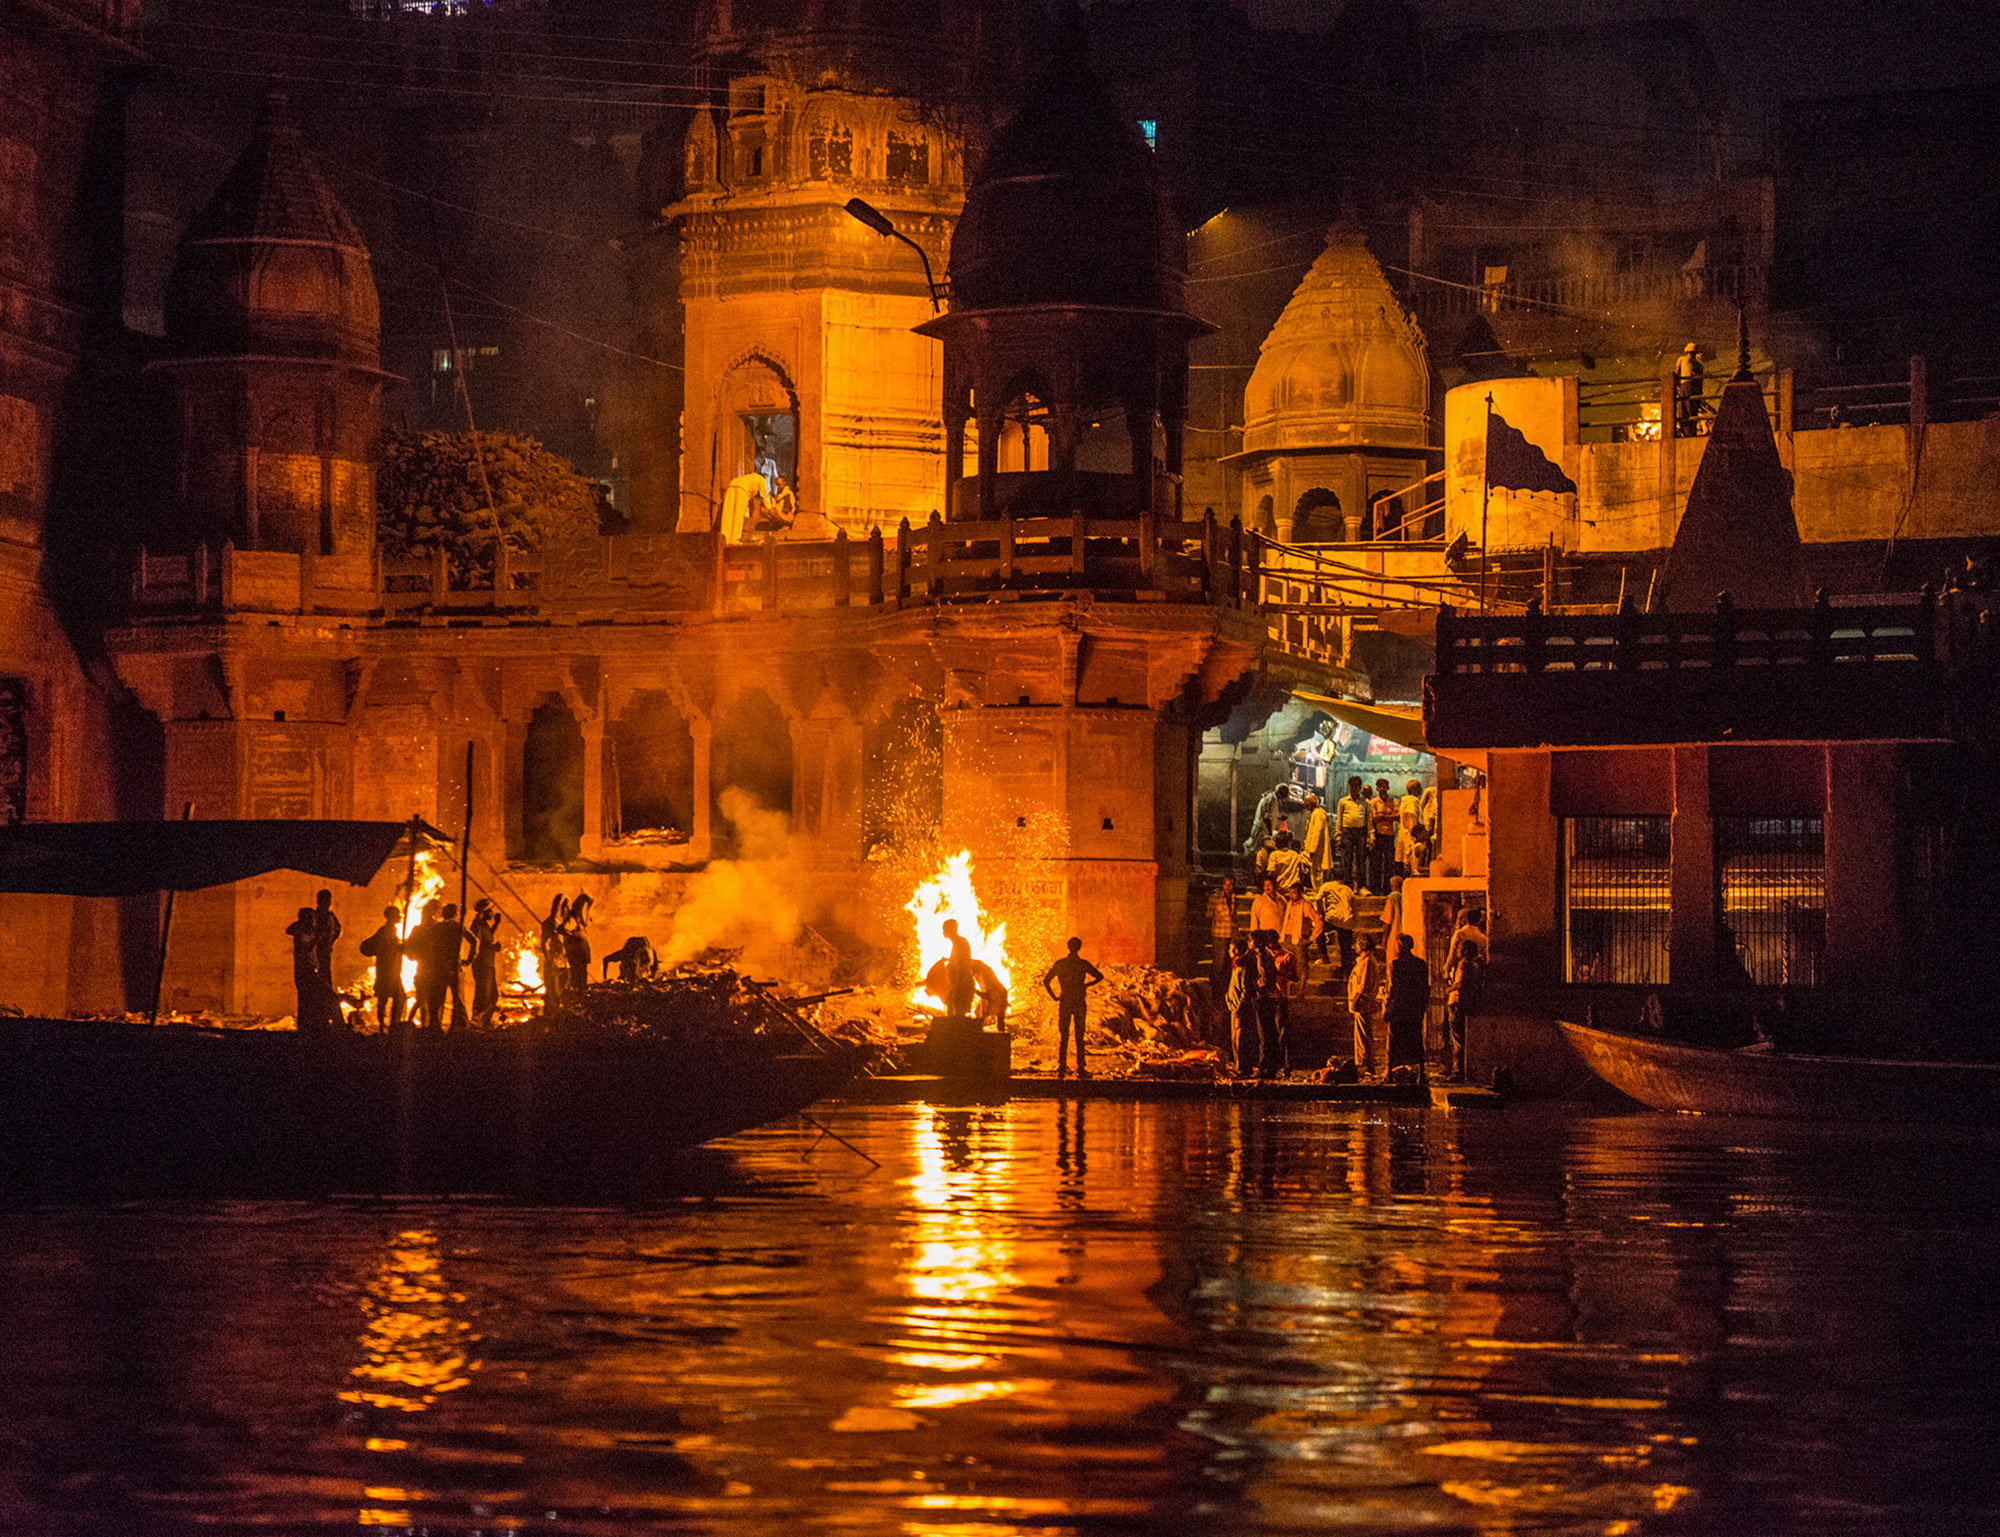 In Varanasi, India, funeral pyres run 24 hours a day. Many Hindu come to this ancient city to die since it is believed you will break the cycle of death and rebirth if your ashes are laid in the Ganges here. Many can't afford the funeral costs so many bodies are not properly cremated. Demand for wood has also taxes many of the Himalayan forests upstream.